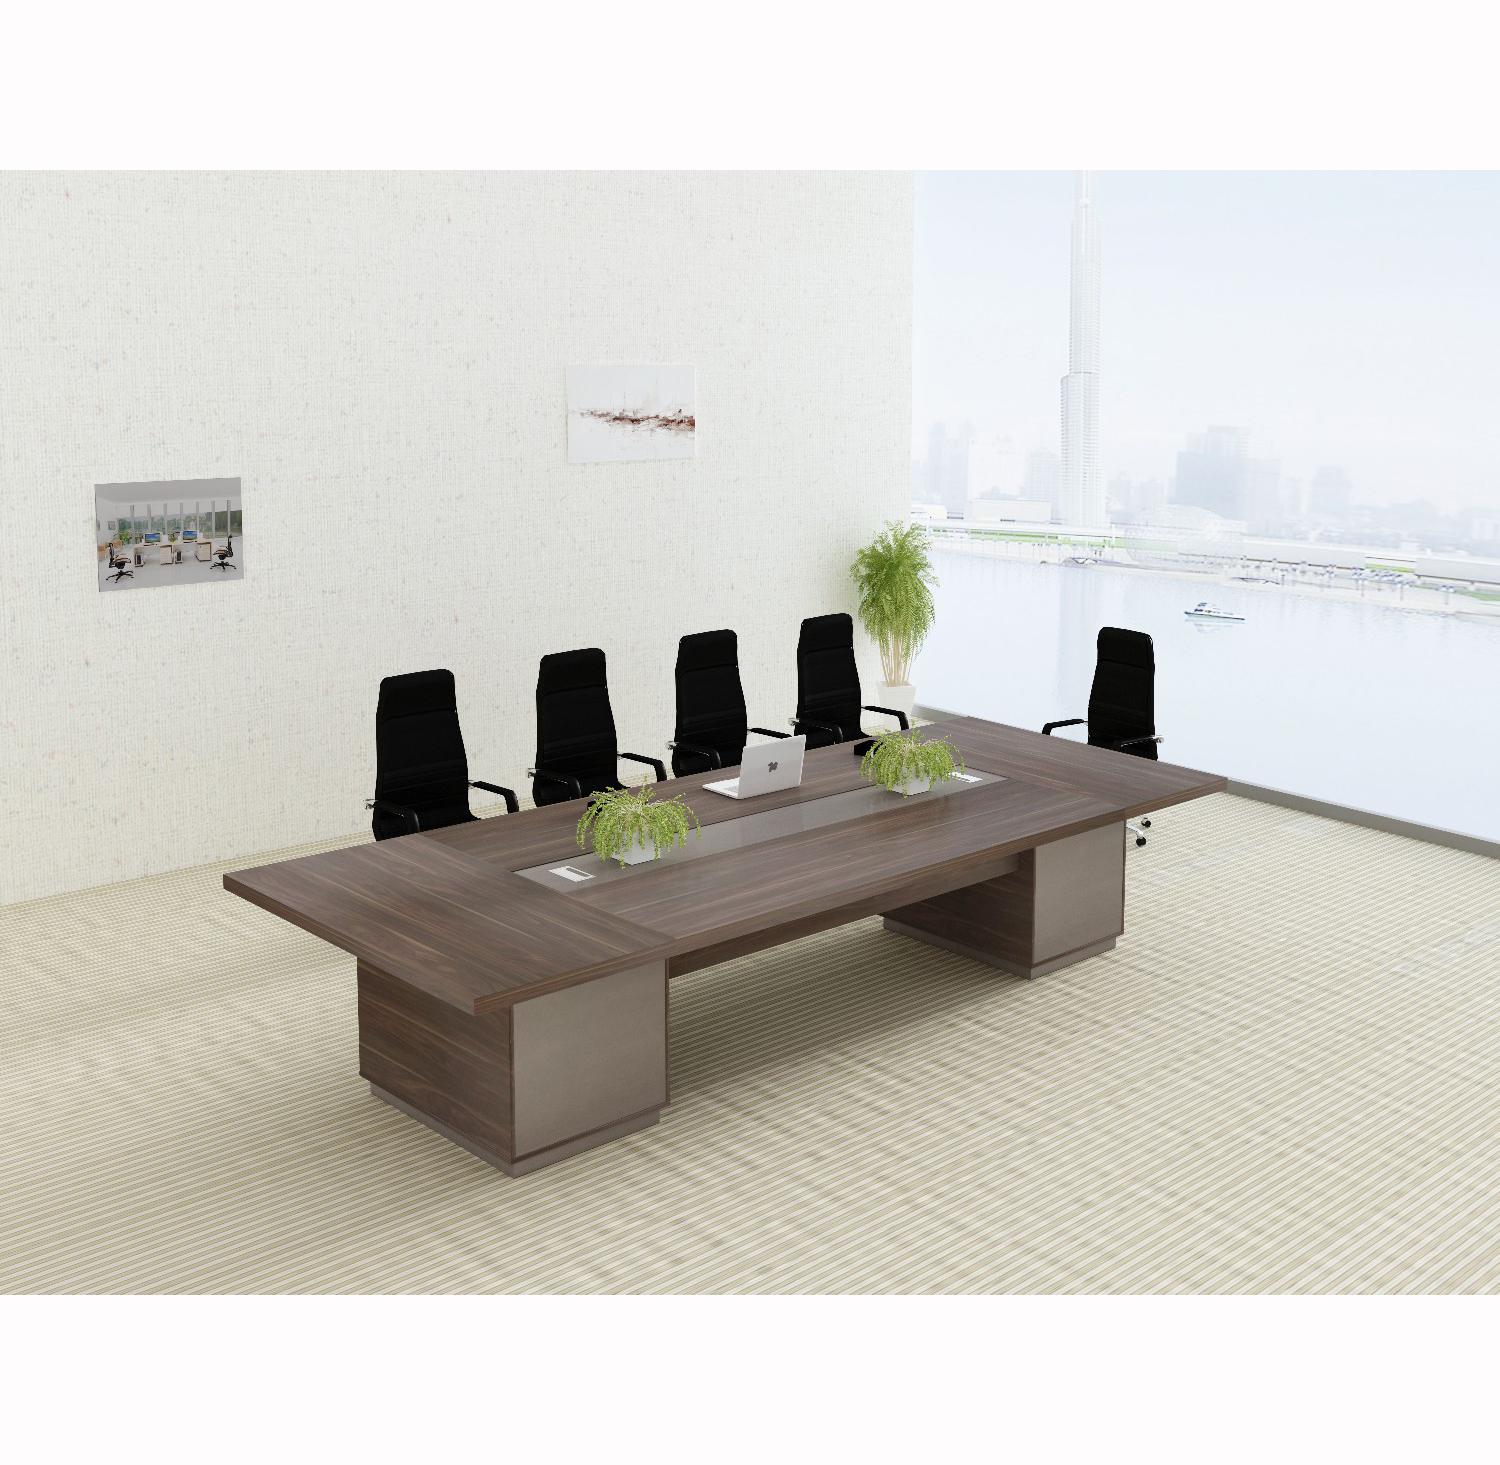 2019 Modern office furniture design luxury meeting room table  conference table